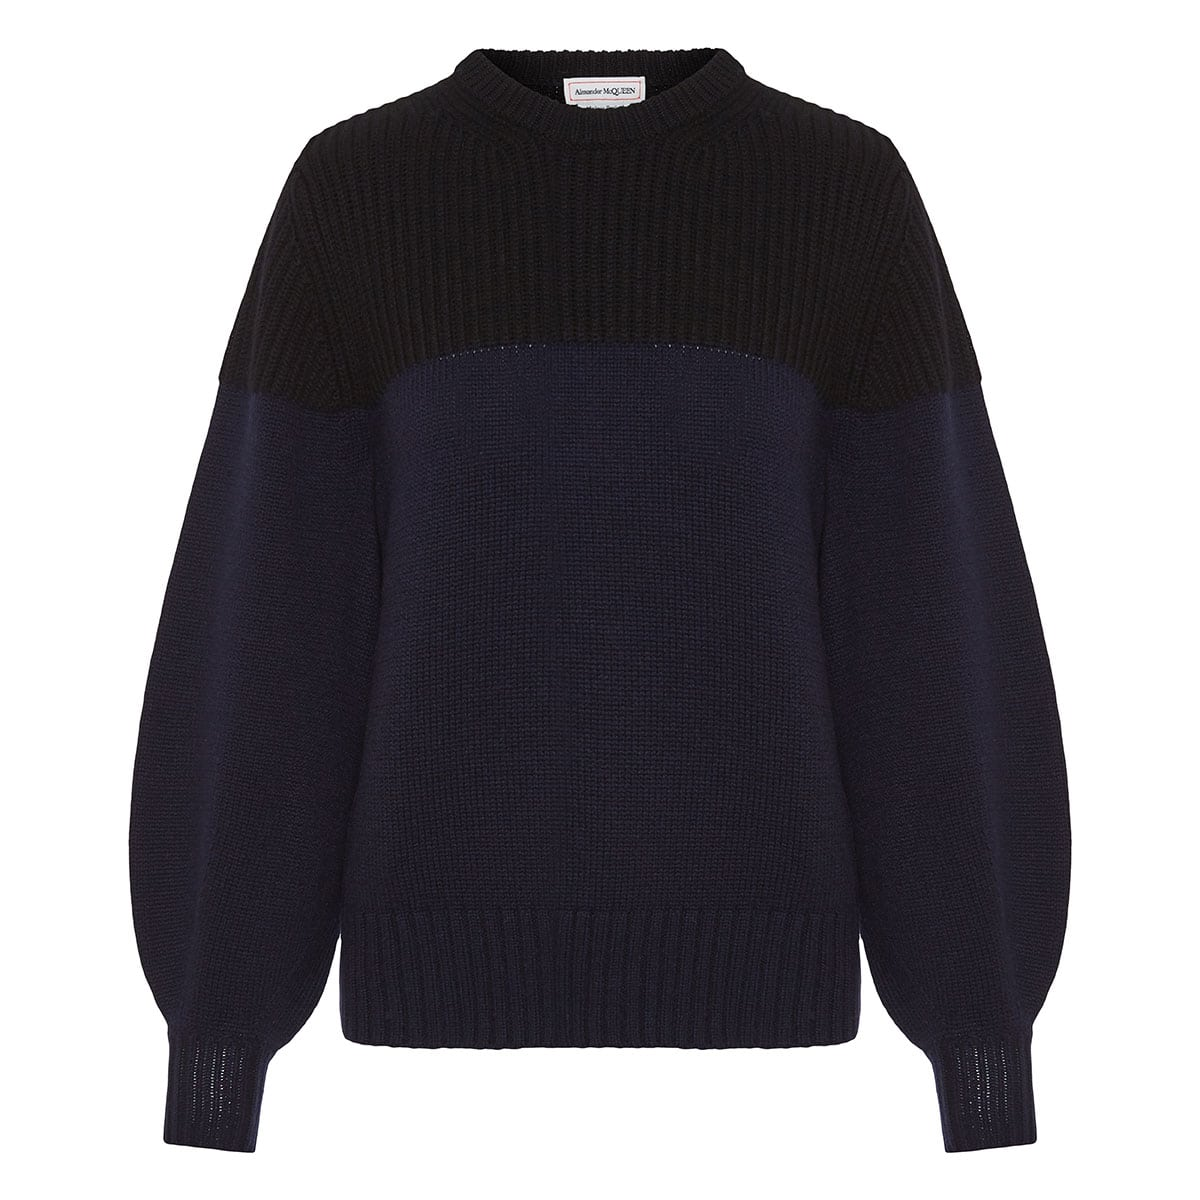 Two-tone oversized cashmere sweater